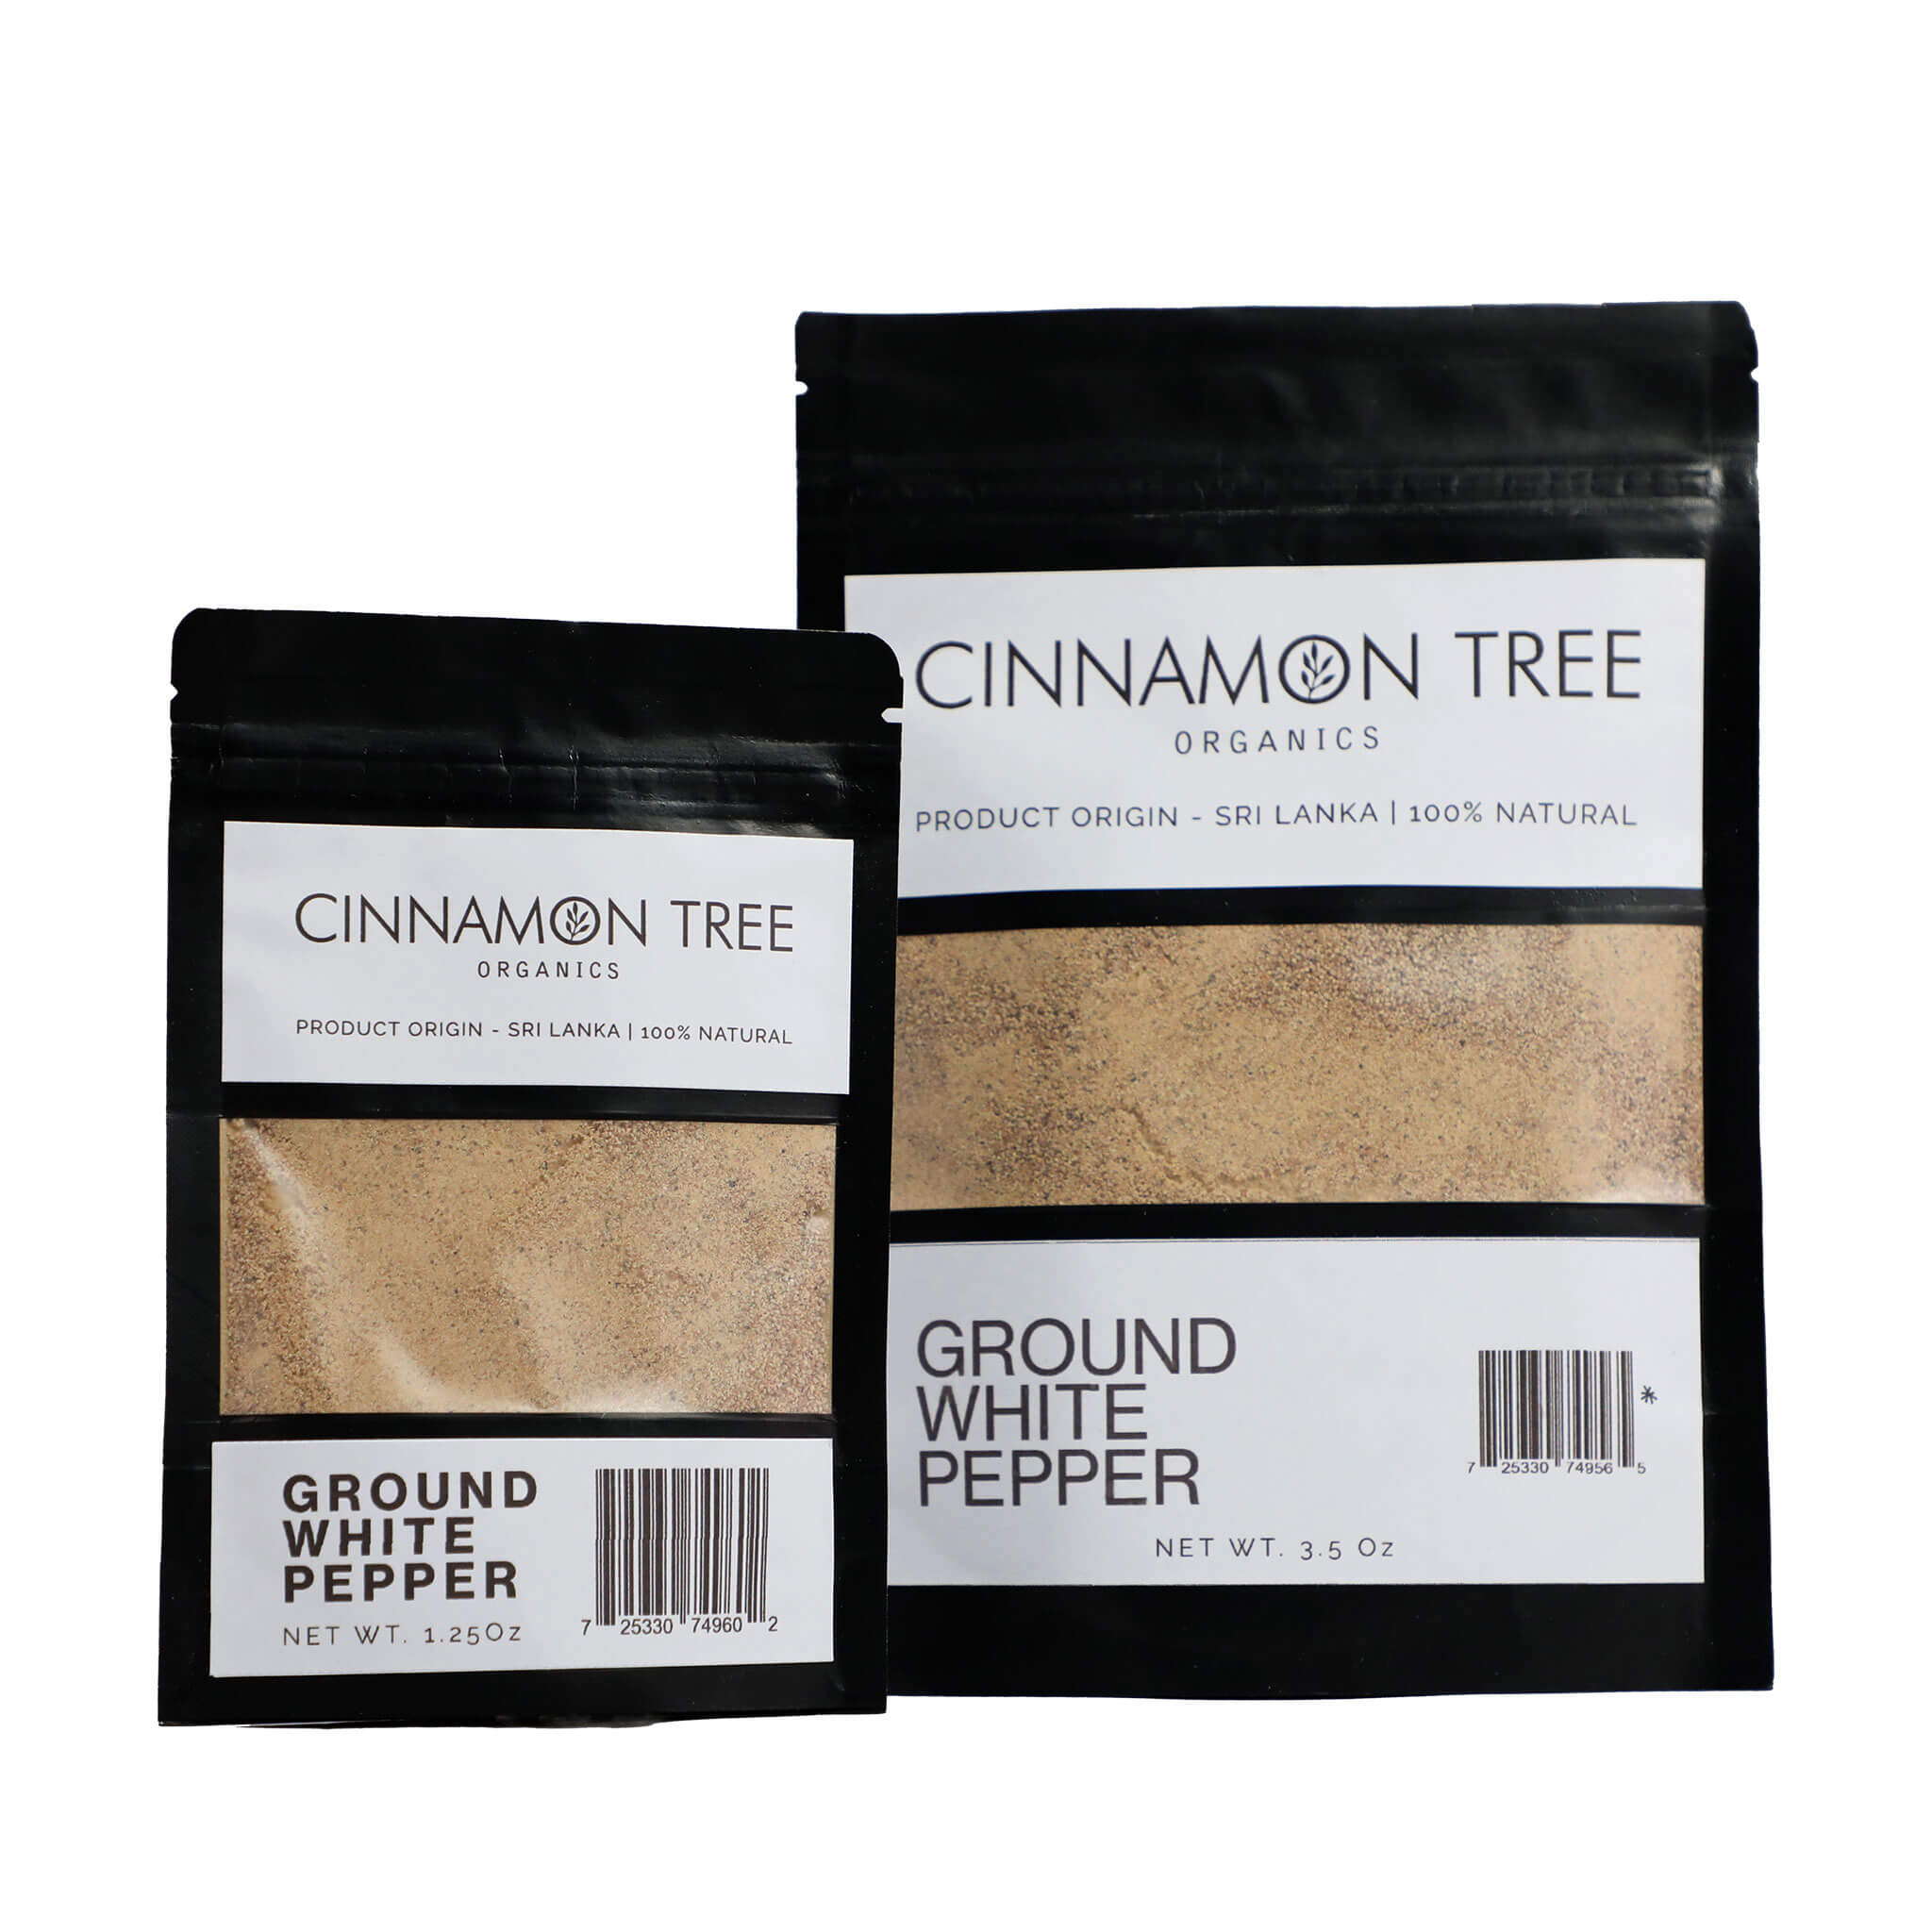 Cinnamon Tree Organics Certified-organic single origin ground white pepper packs